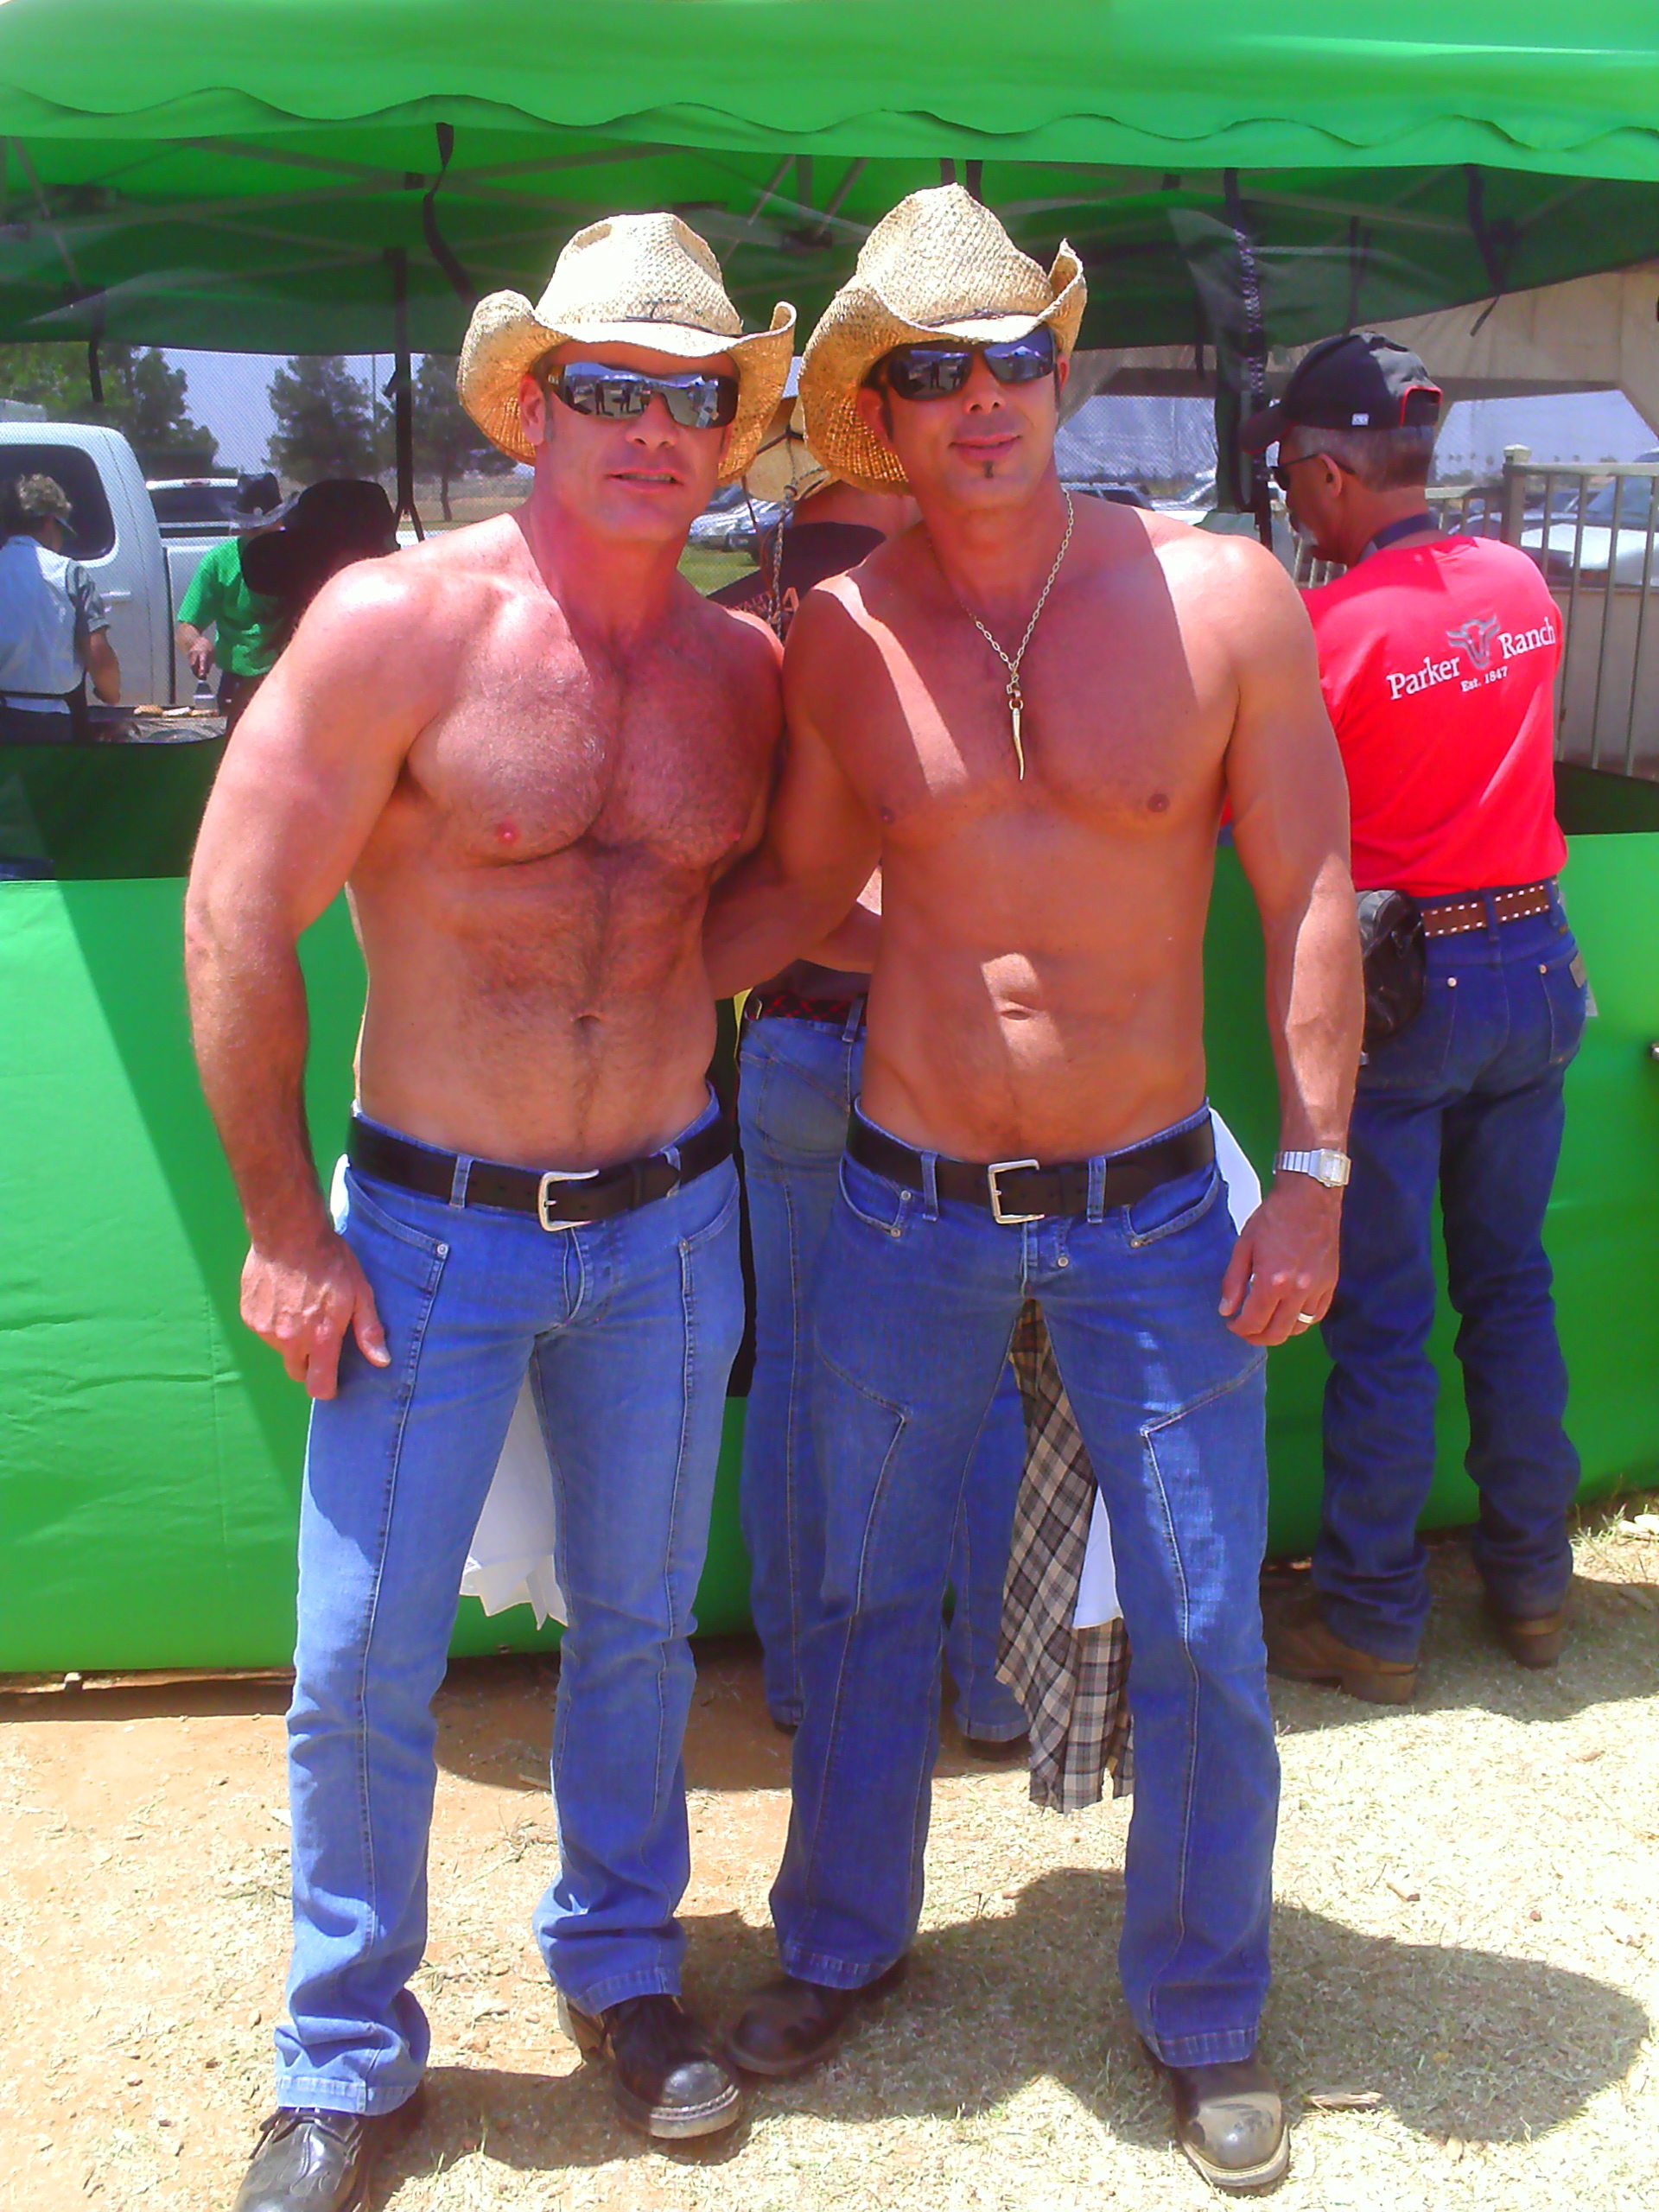 Hot gay cowboy blog